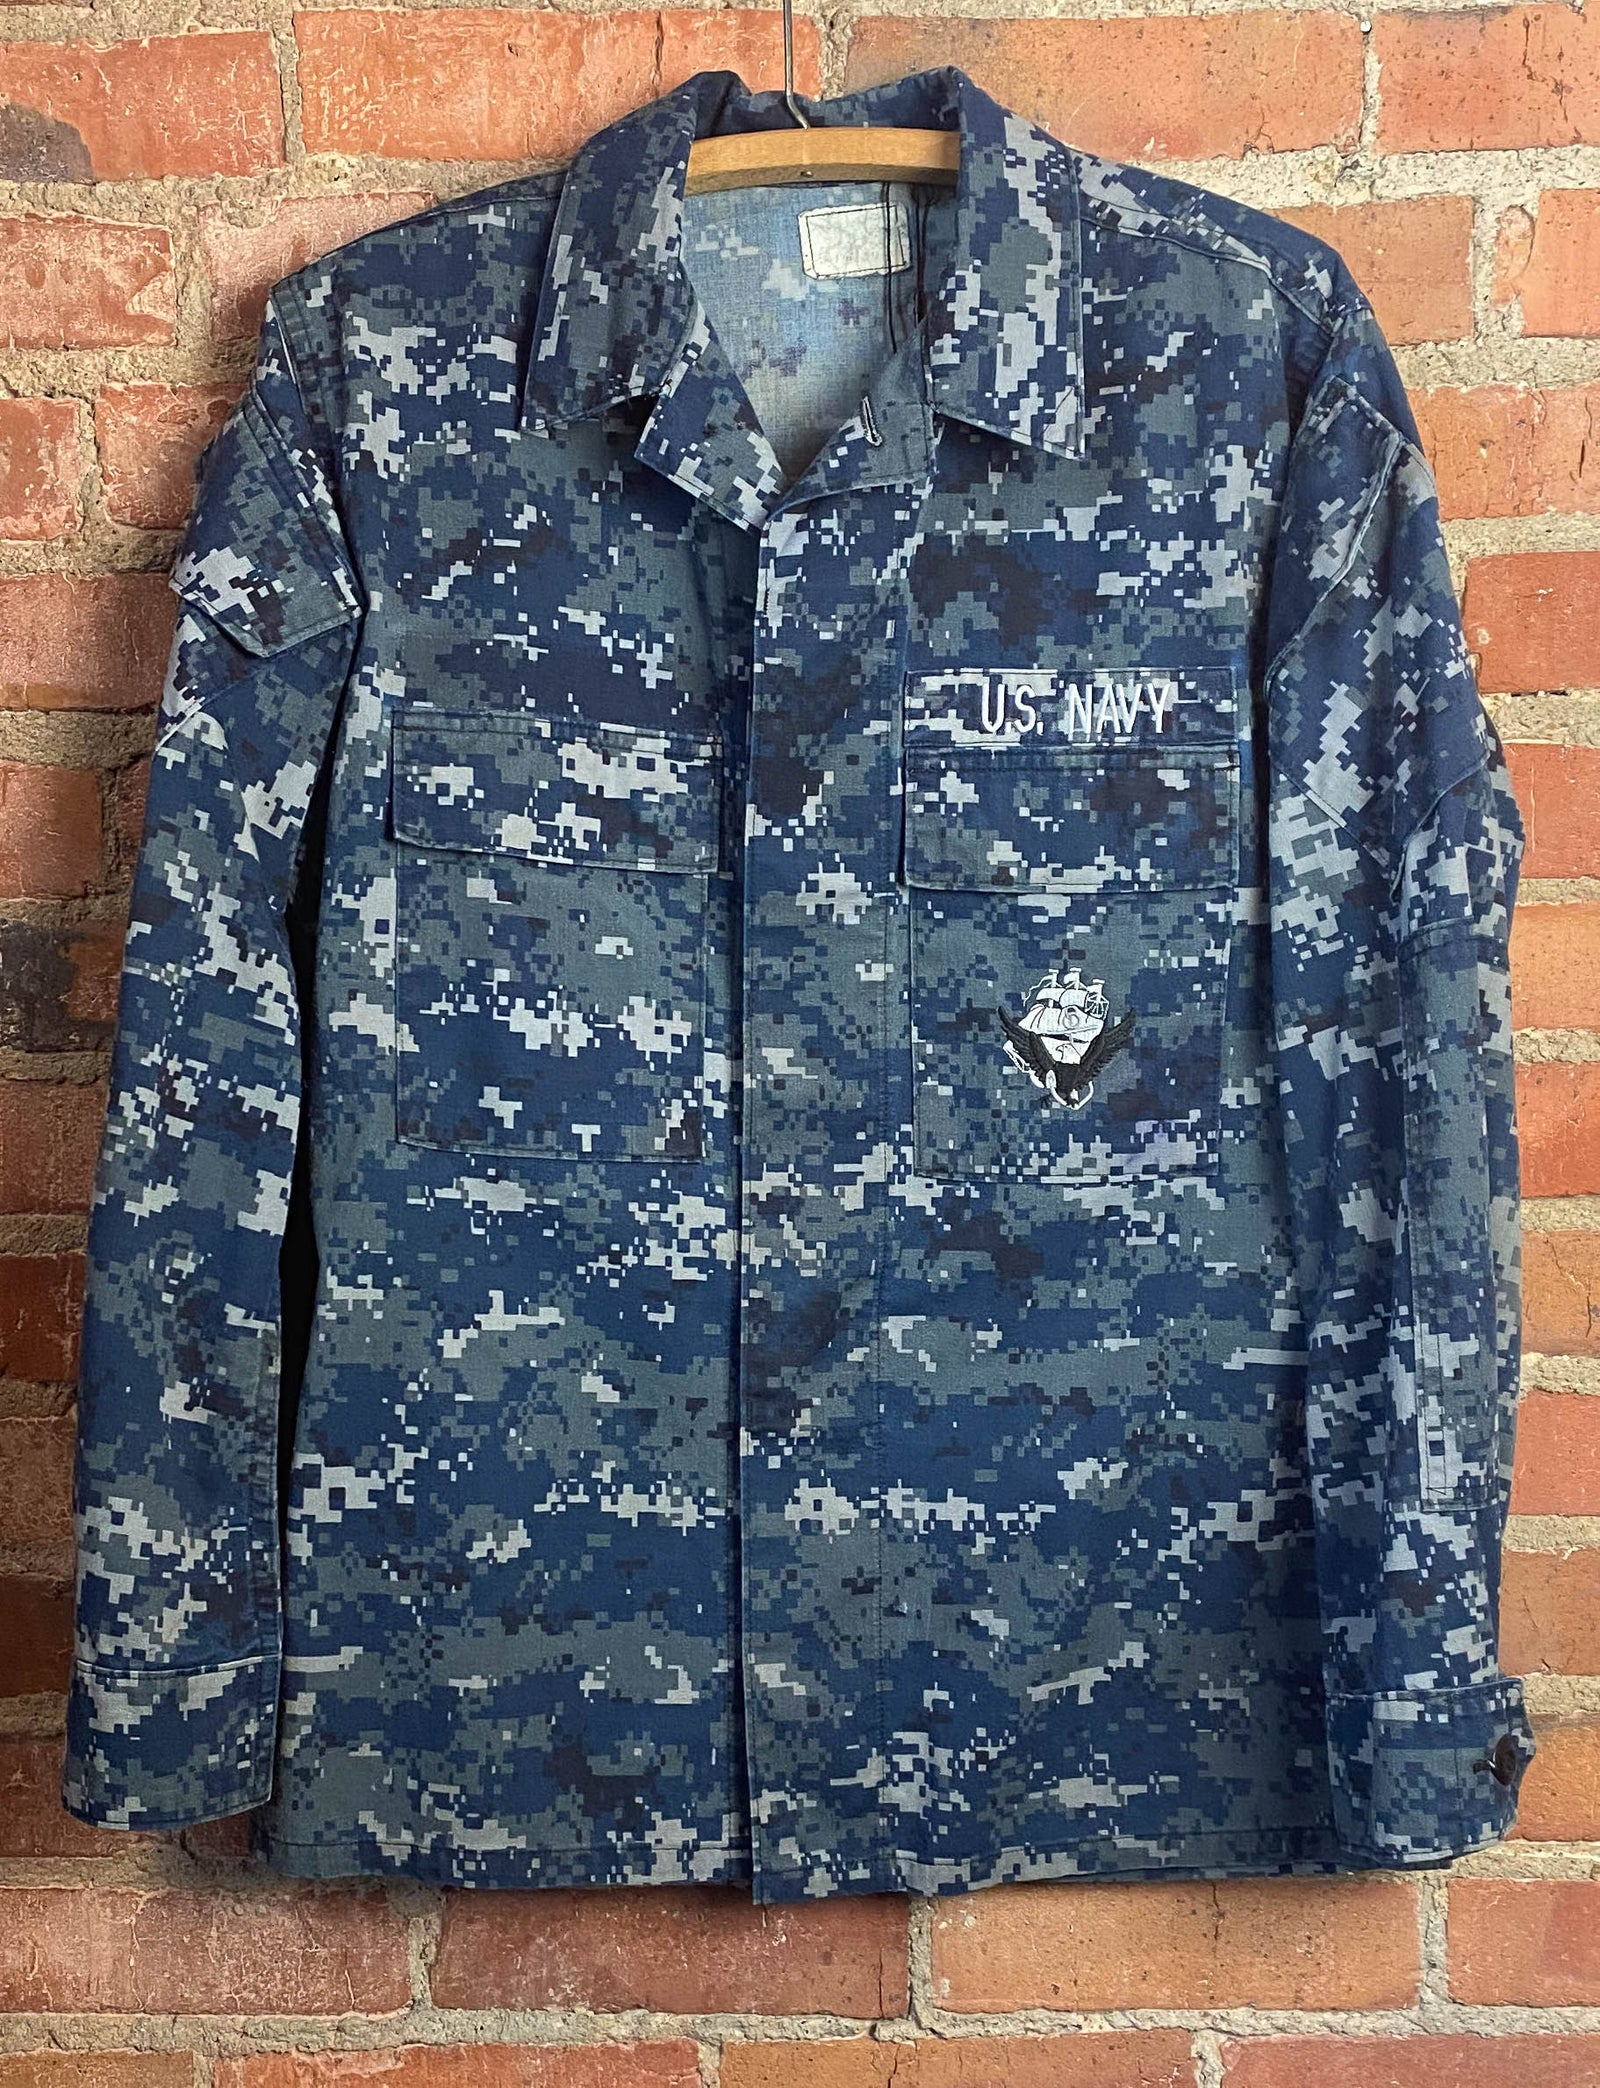 Men's Vintage 90's U.S. Navy Camouflage Military Jacket Blue Large